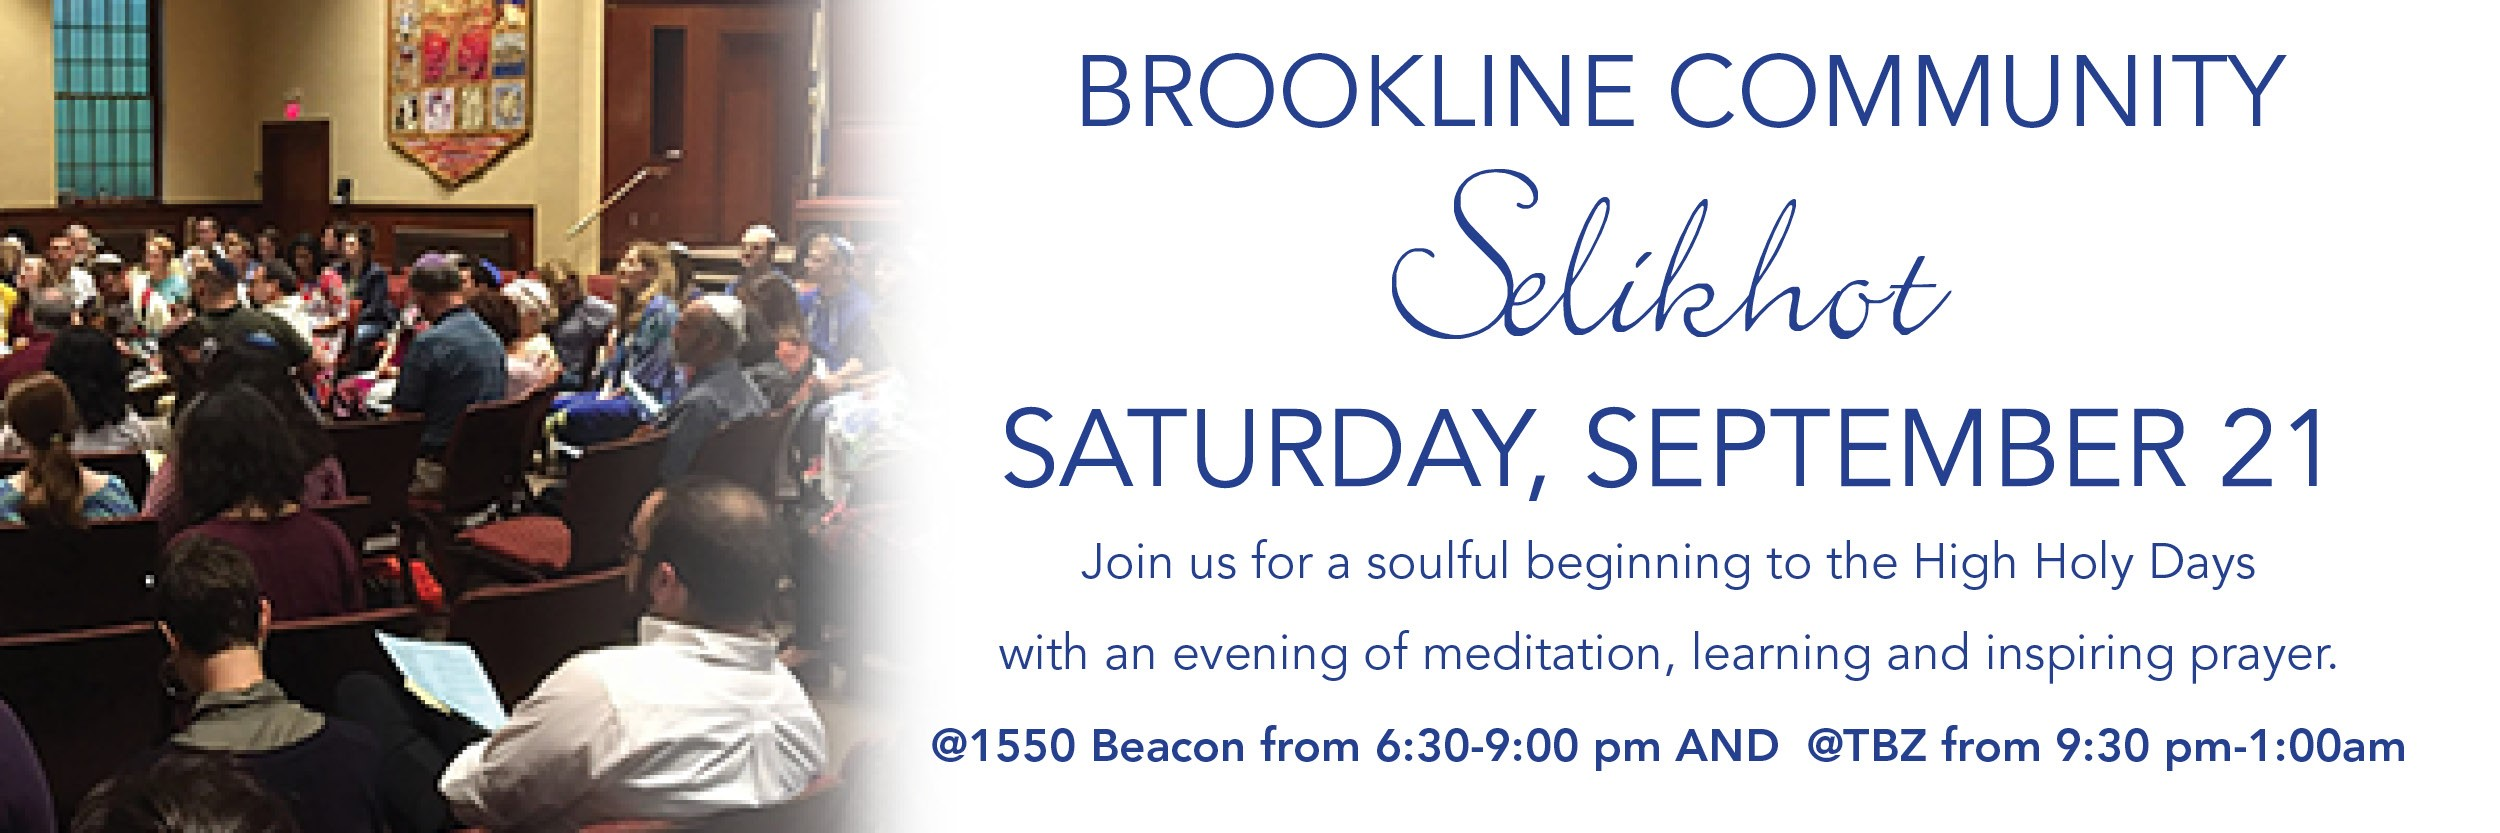 """<a href=""""https://www.tbzbrookline.org/event/selikhot2019""""                                     target="""""""">                                                                 <span class=""""slider_title"""">                                     Selikhot at TBZ                                </span>                                                                 </a>                                                                                                                                                                                       <span class=""""slider_description"""">Join us for a soulful and contemplative beginning to the High Holidays.</span>                                                                                     <a href=""""https://www.tbzbrookline.org/event/selikhot2019"""" class=""""slider_link""""                             target="""""""">                             LEARN MORE                            </a>"""